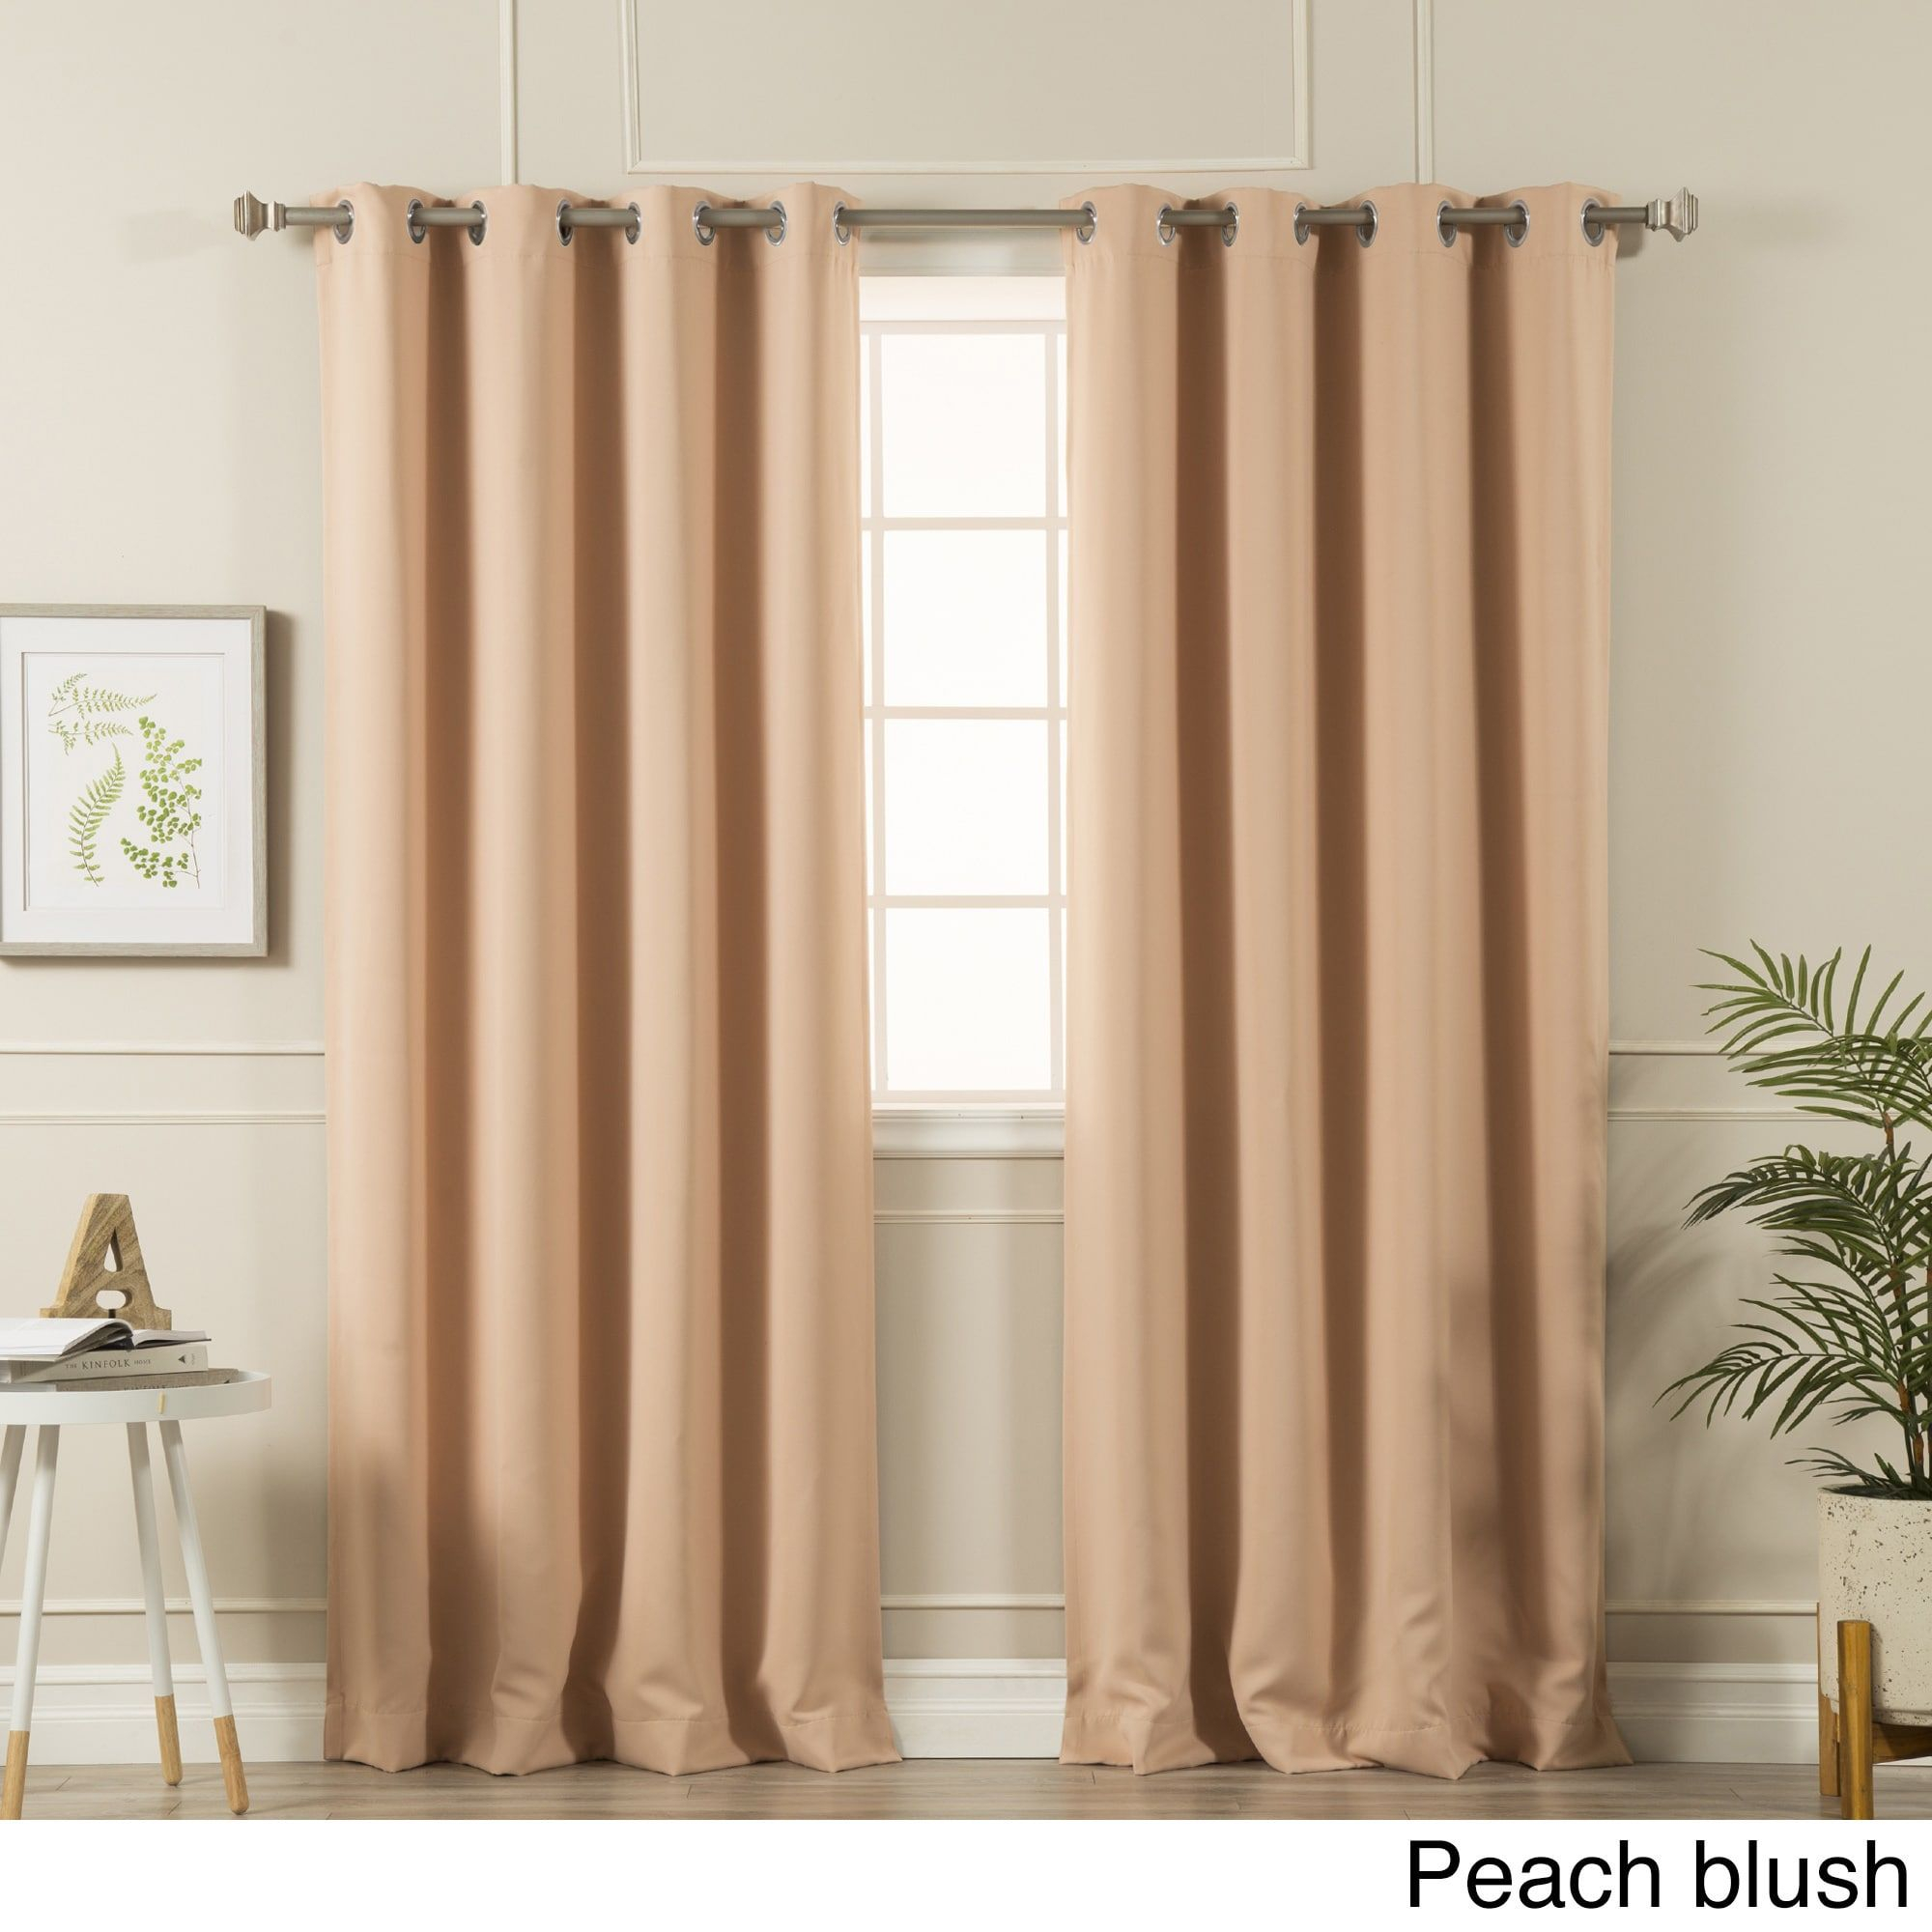 Aurora Home Silvertone Grommet Top Thermal Insulated Throughout Insulated Grommet Blackout Curtain Panel Pairs (View 3 of 20)